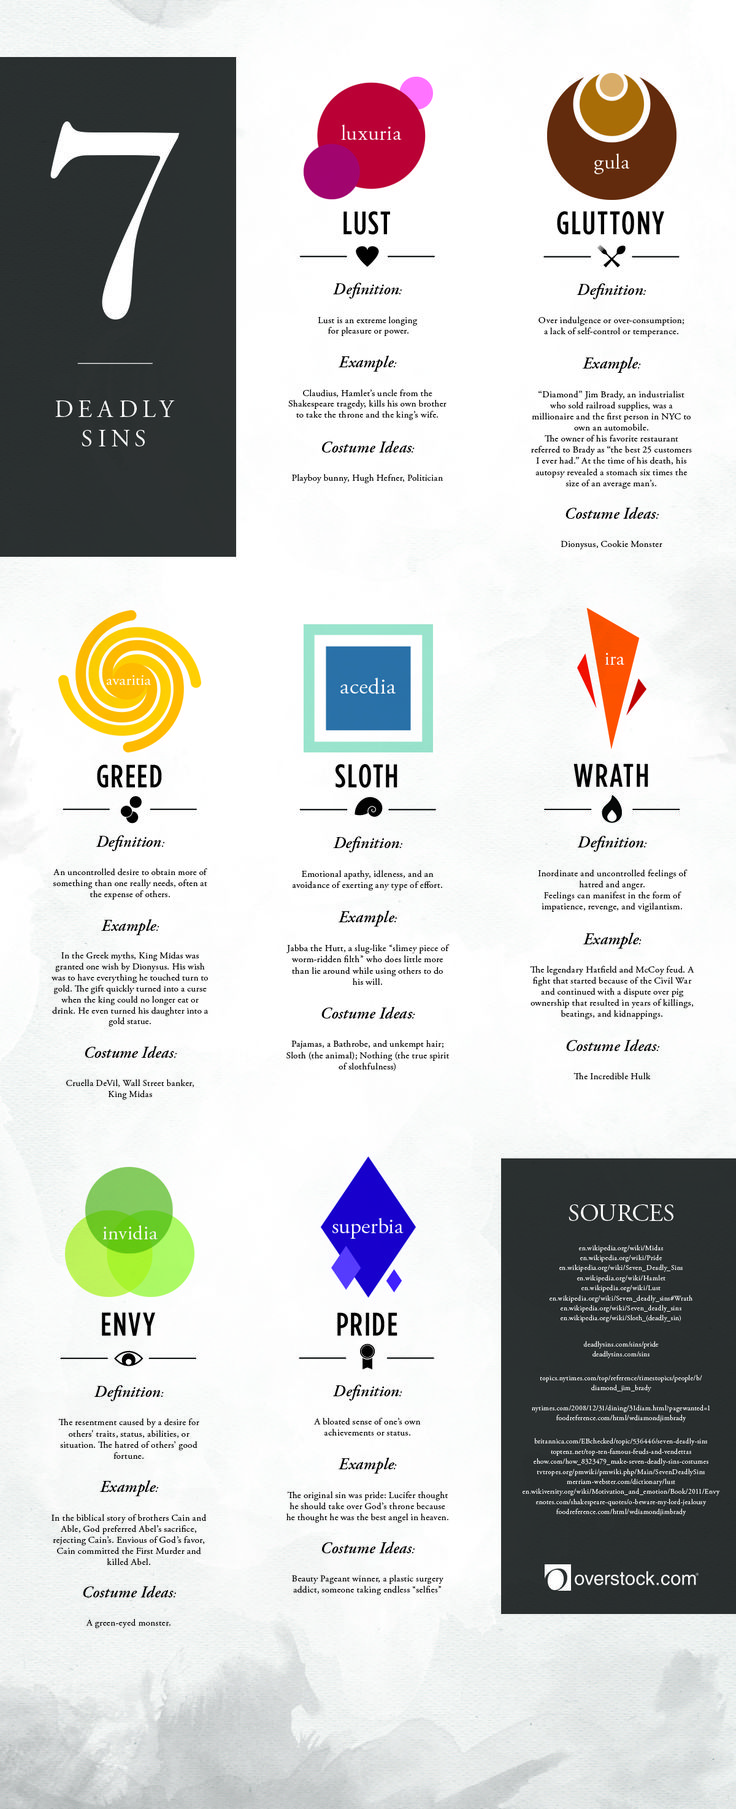 The Seven Deadly Sins [by Overstock -- via #tipsographic]. More at tipsographic.com